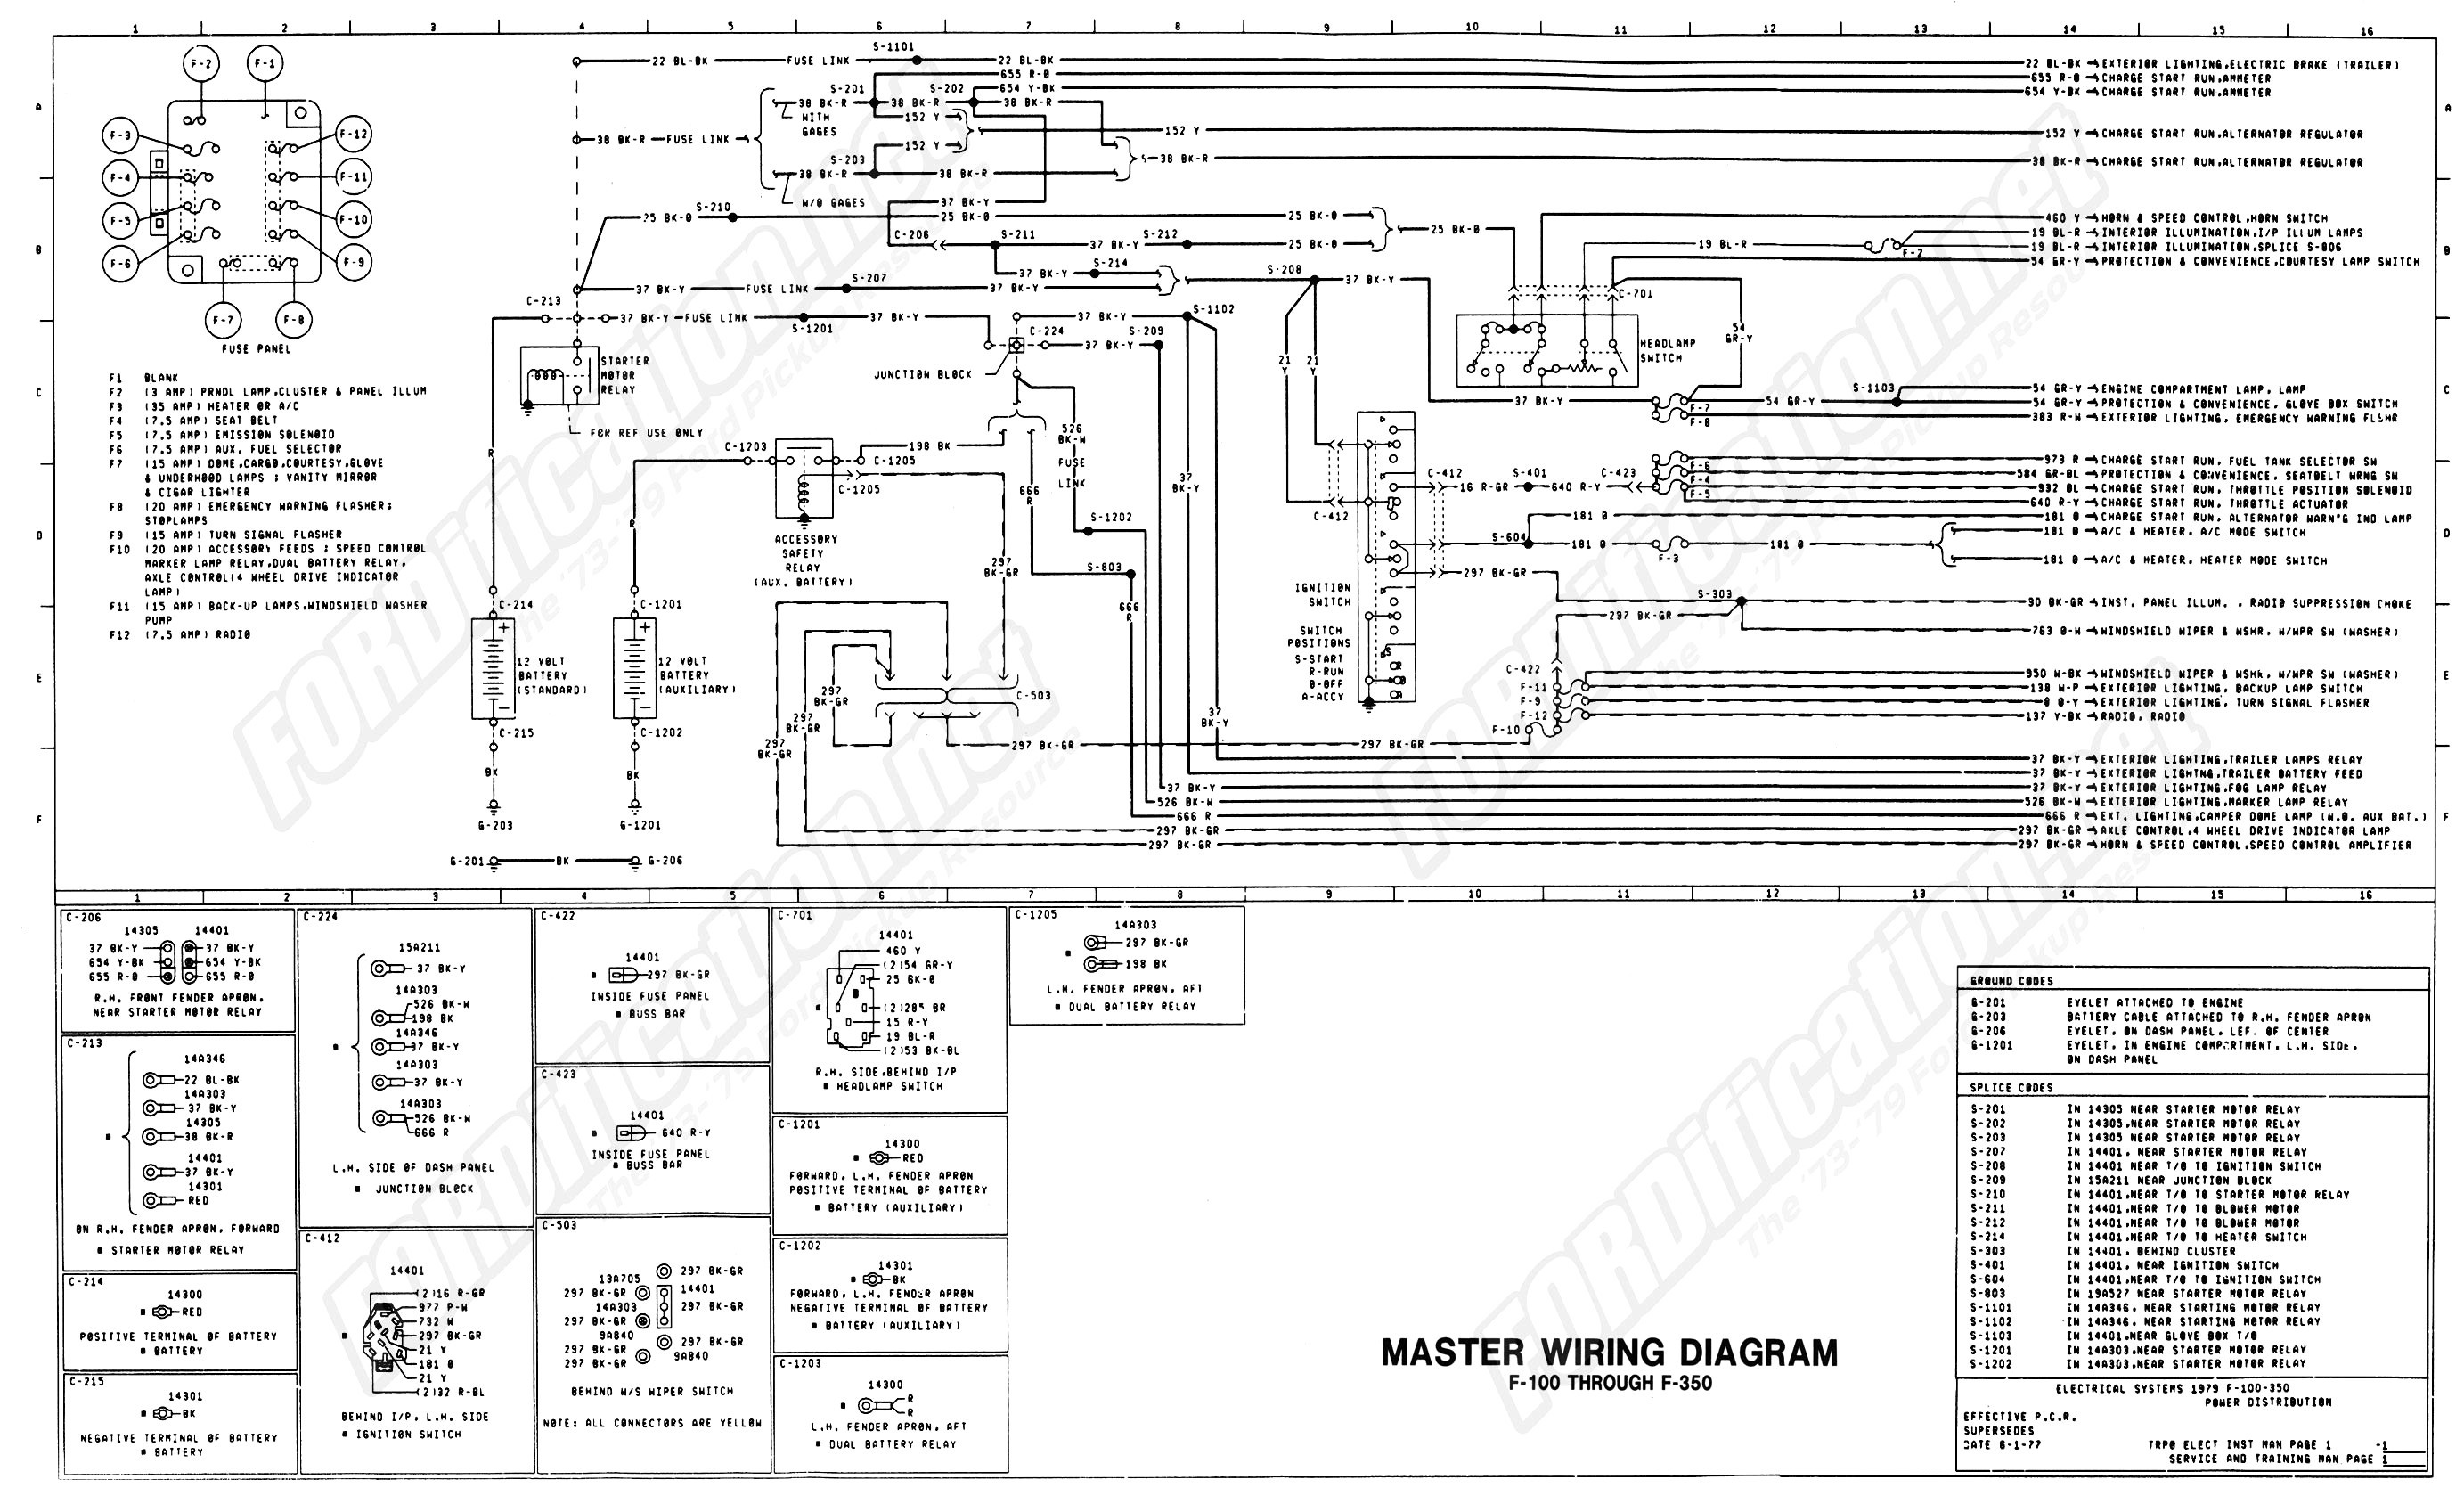 1978 f150 charging wiring diagram basic wiring diagram u2022 rh  rnetcomputer co 1978 Ford F-150 Wiring Diagram 1978 f100 starter wiring  diagram